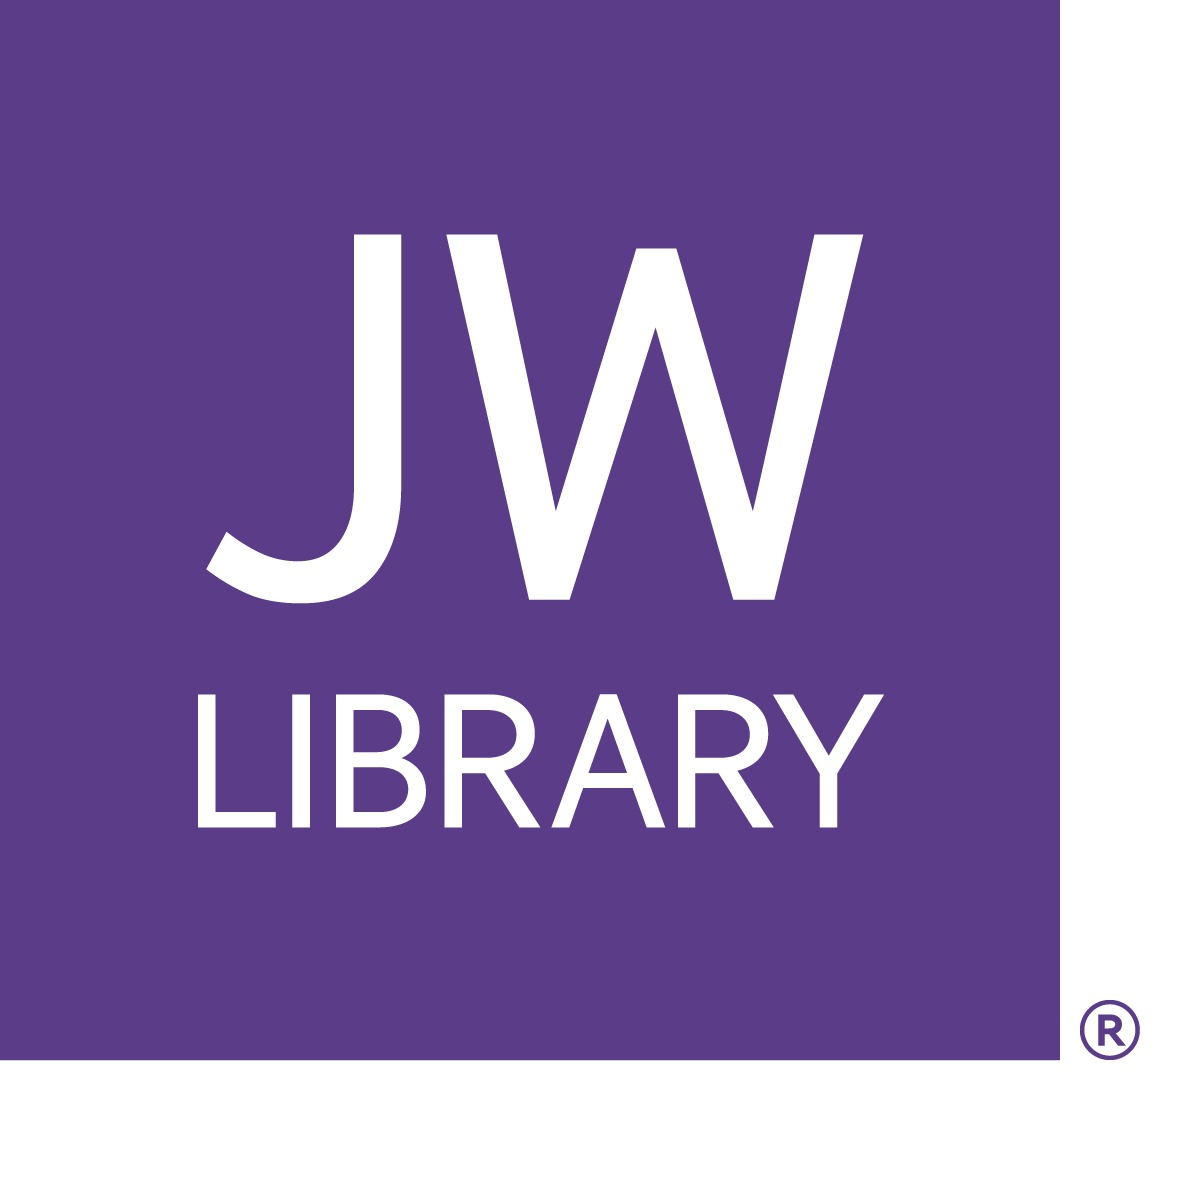 JW Library App: How to Use Main Features (iOS) | JW ORG Help